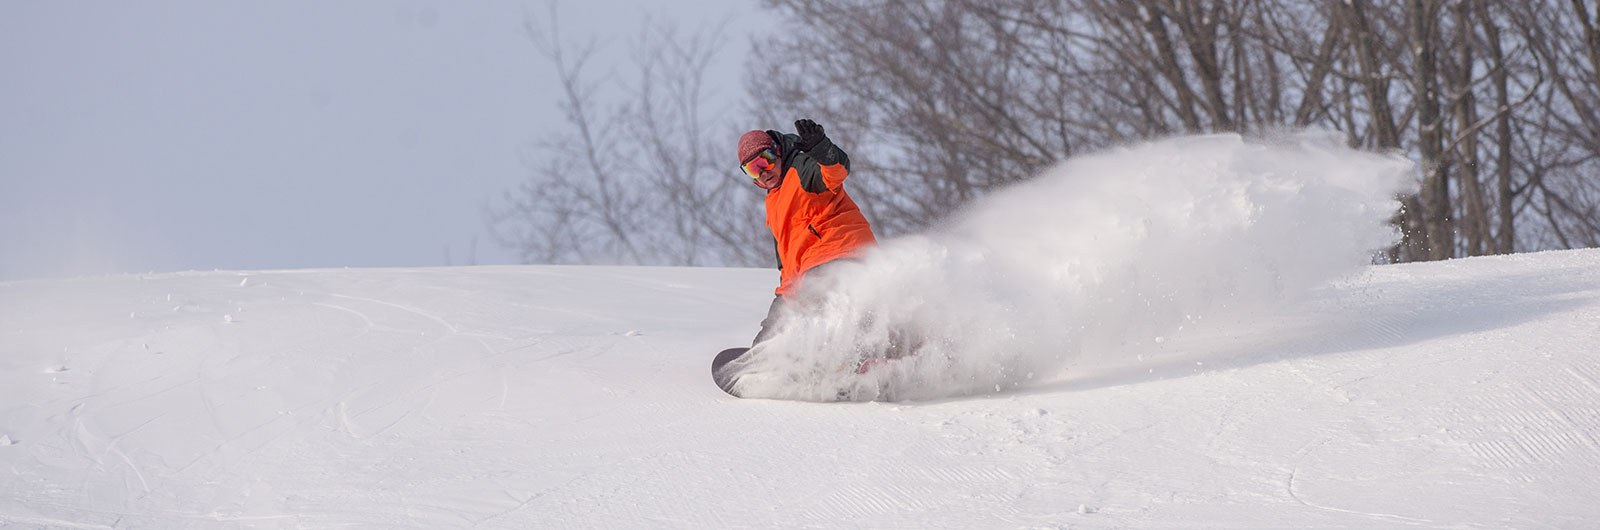 snowboarder spraying snow on The Wall slope